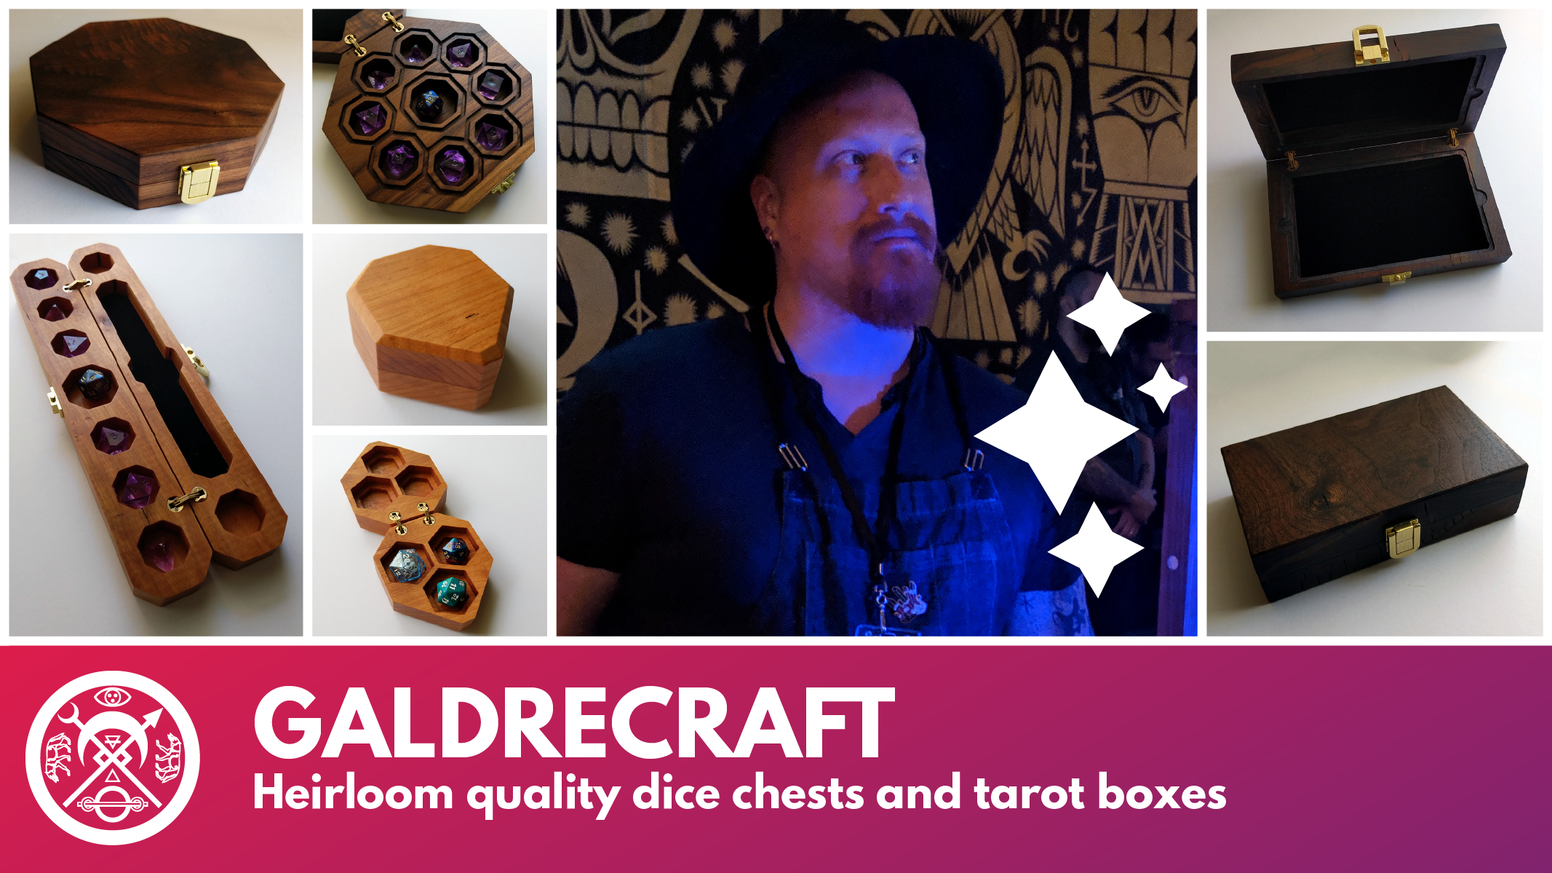 The next generation of dice, trinket, and tarot boxes from Galdrecraft crafted from beautiful, sustainable, and ethical hardwoods.